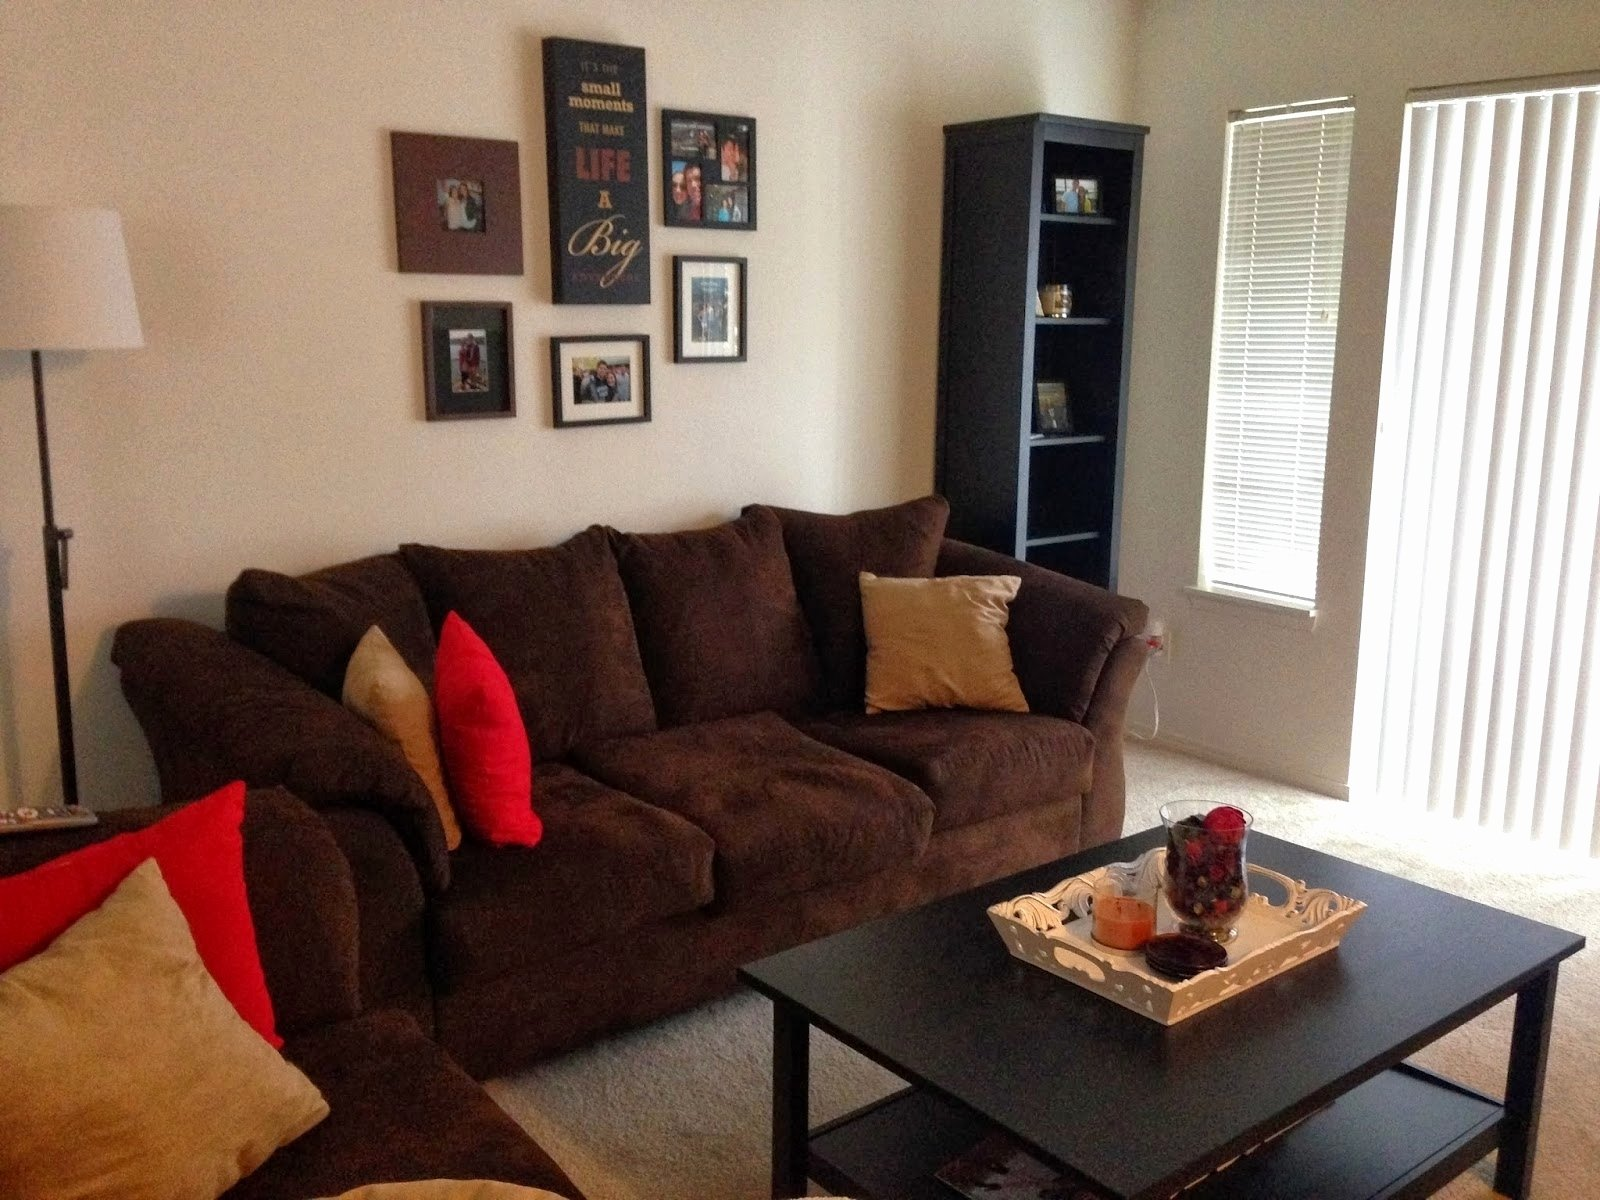 10 Best Red And Brown Living Room Ideas lovely red black and brown living room ideas living room ideas 2020